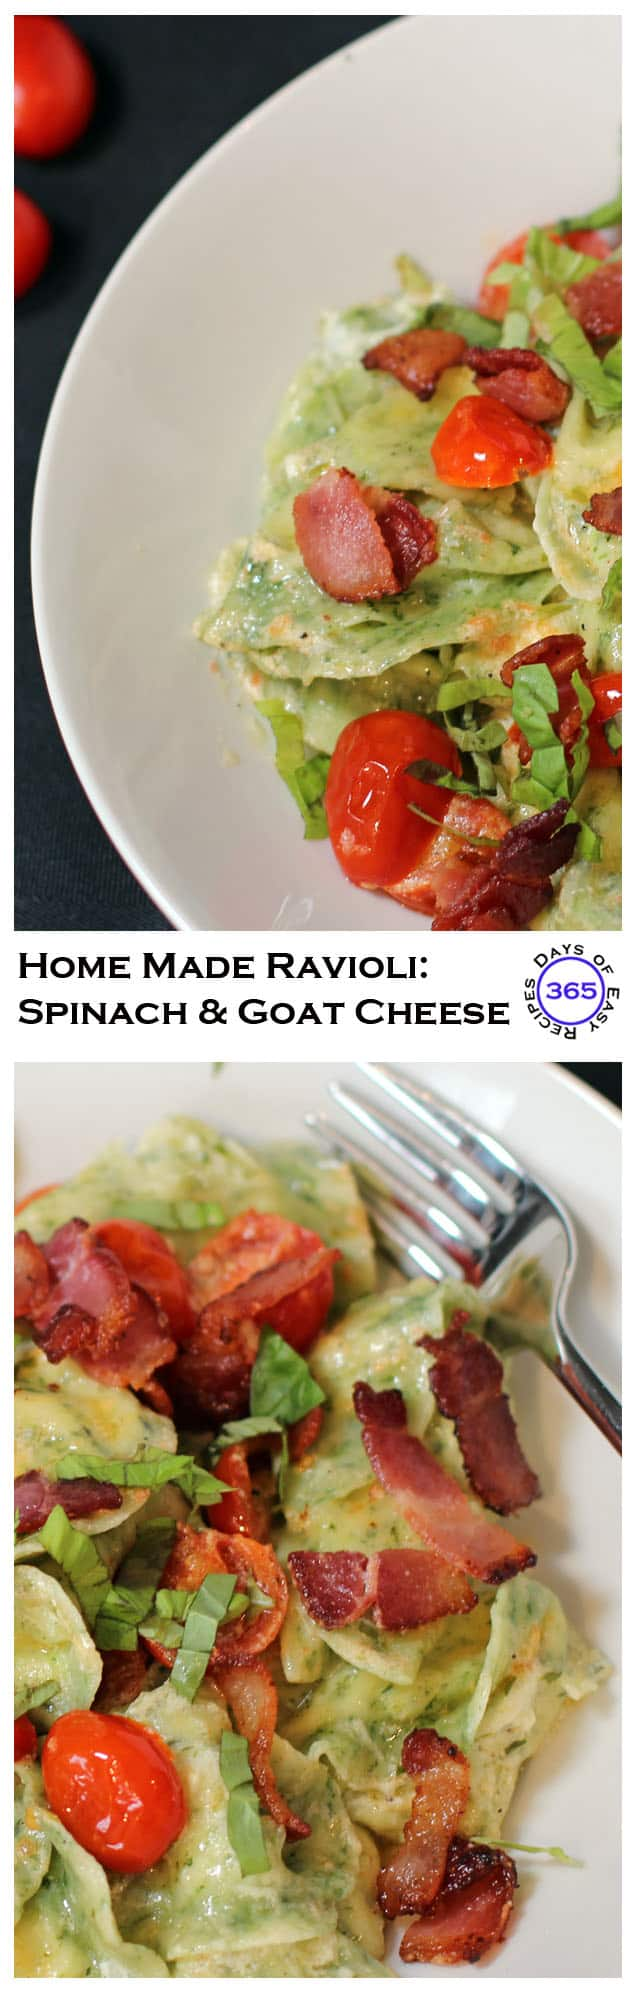 A delicious home made ravioli made from spinach pasta and goat cheese filling. AMAZING!! Get the ladies together for a day of wine and ravioli making. | 365 Days of Easy Recipes